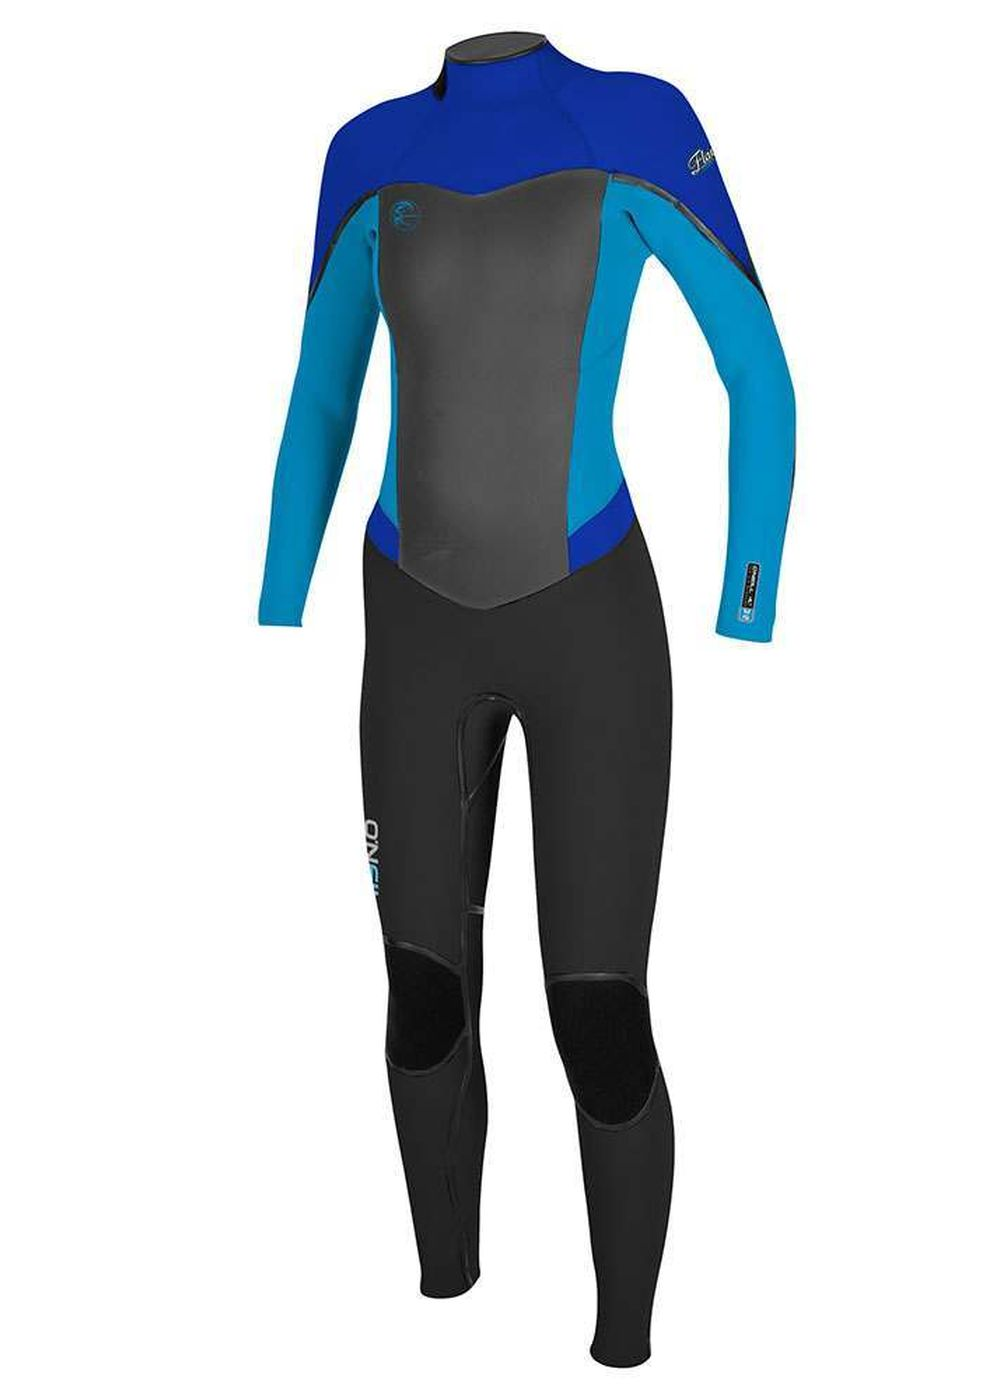 Oneill Womens Flair Zz 5/4 Wetsuit 18 Blk/sky/tah Picture